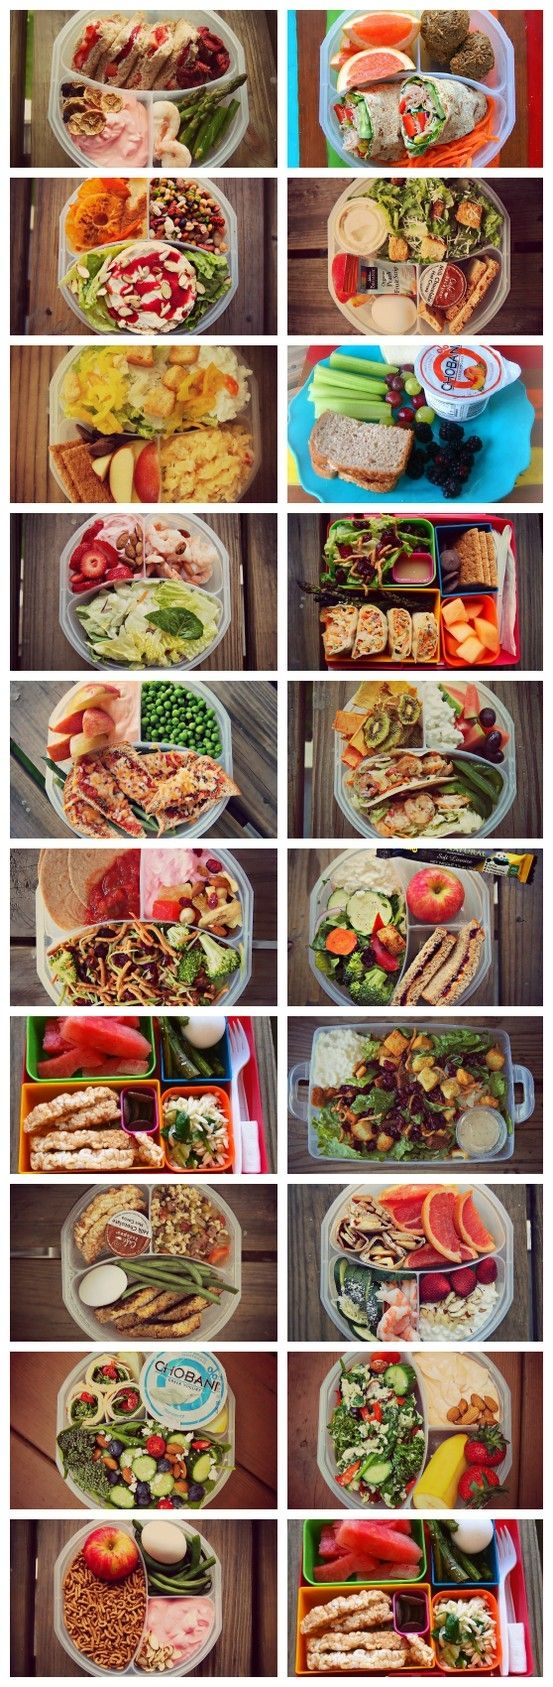 Healthy Lunch Ideas. This blogger posts a picture of her lunch every day - tons of super healthy, balanced, and colorful ideas! by dee